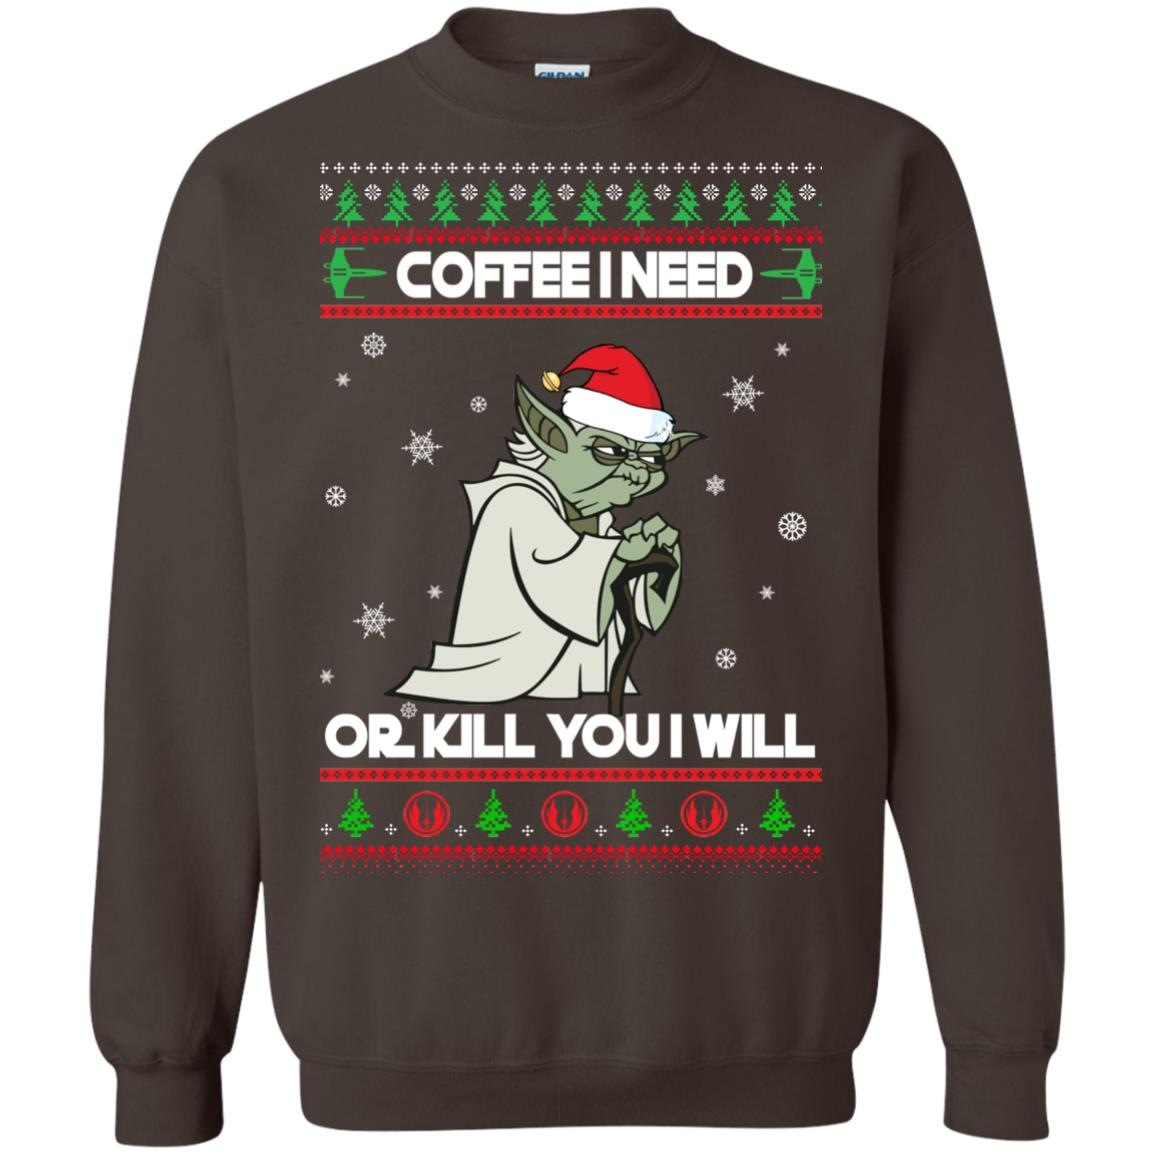 image 1247px Star Wars Yoda Sweater: Coffee I Need Or Kill You I Will Christmas Sweater